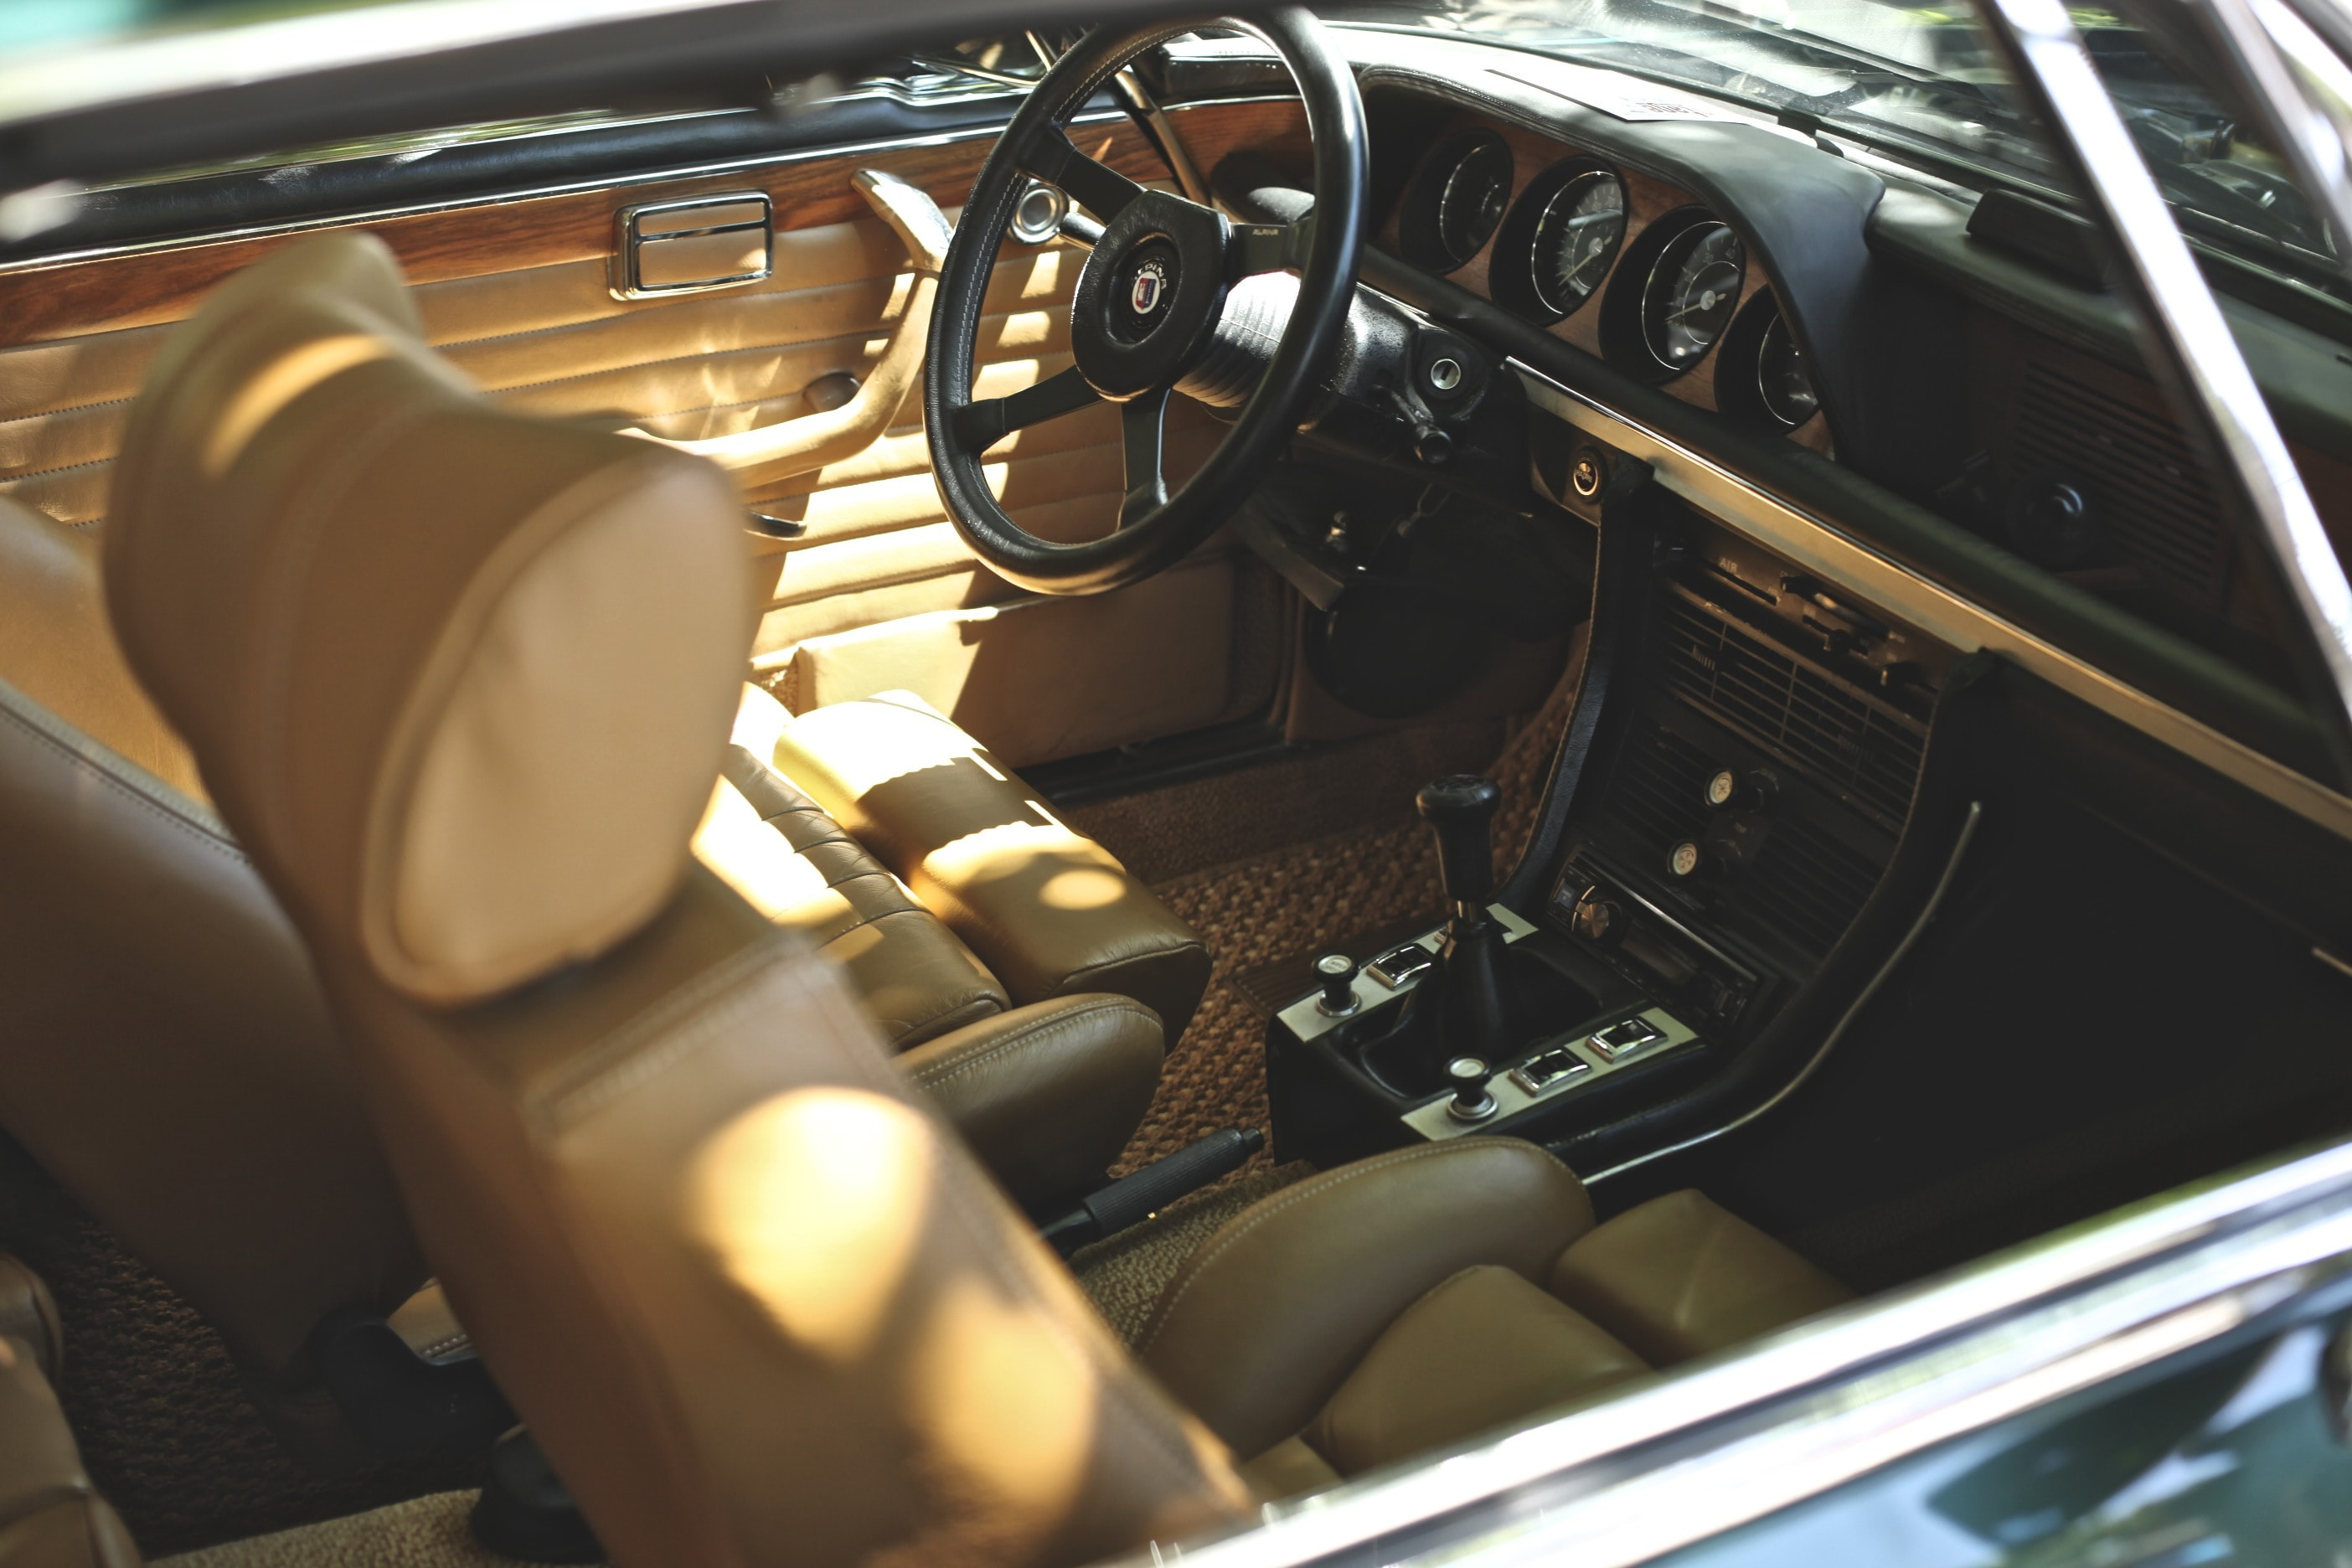 brown and black vehicle interior